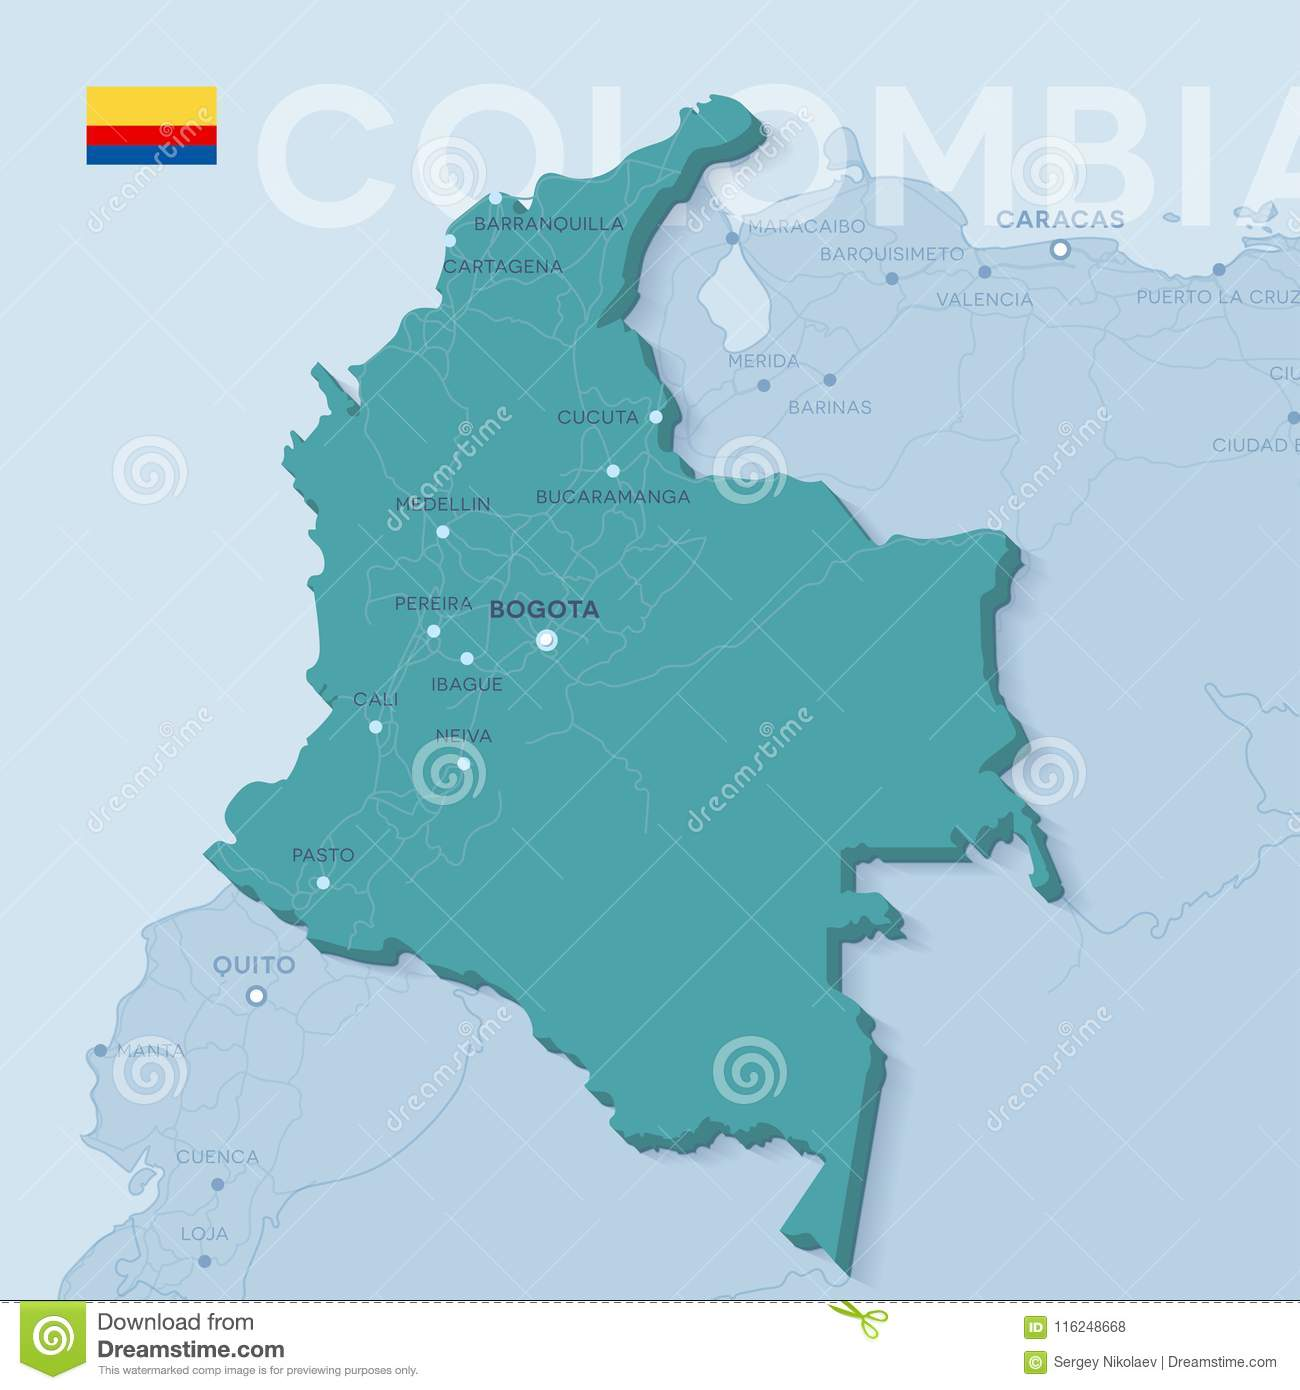 Verctor Map Of Cities And Roads In Colombia. Stock Vector ... on road map biology, features south america, destination south america, road map scandinavia, library south america, camping south america, driving in columbia south america, road map brazil, road map buenos aires, hotels south america, water south america, trip south america, road map anguilla, road map zimbabwe, tourist south america, landlocked country south america, lake nicaragua map central america, road map martinique, blog south america, road map suriname,